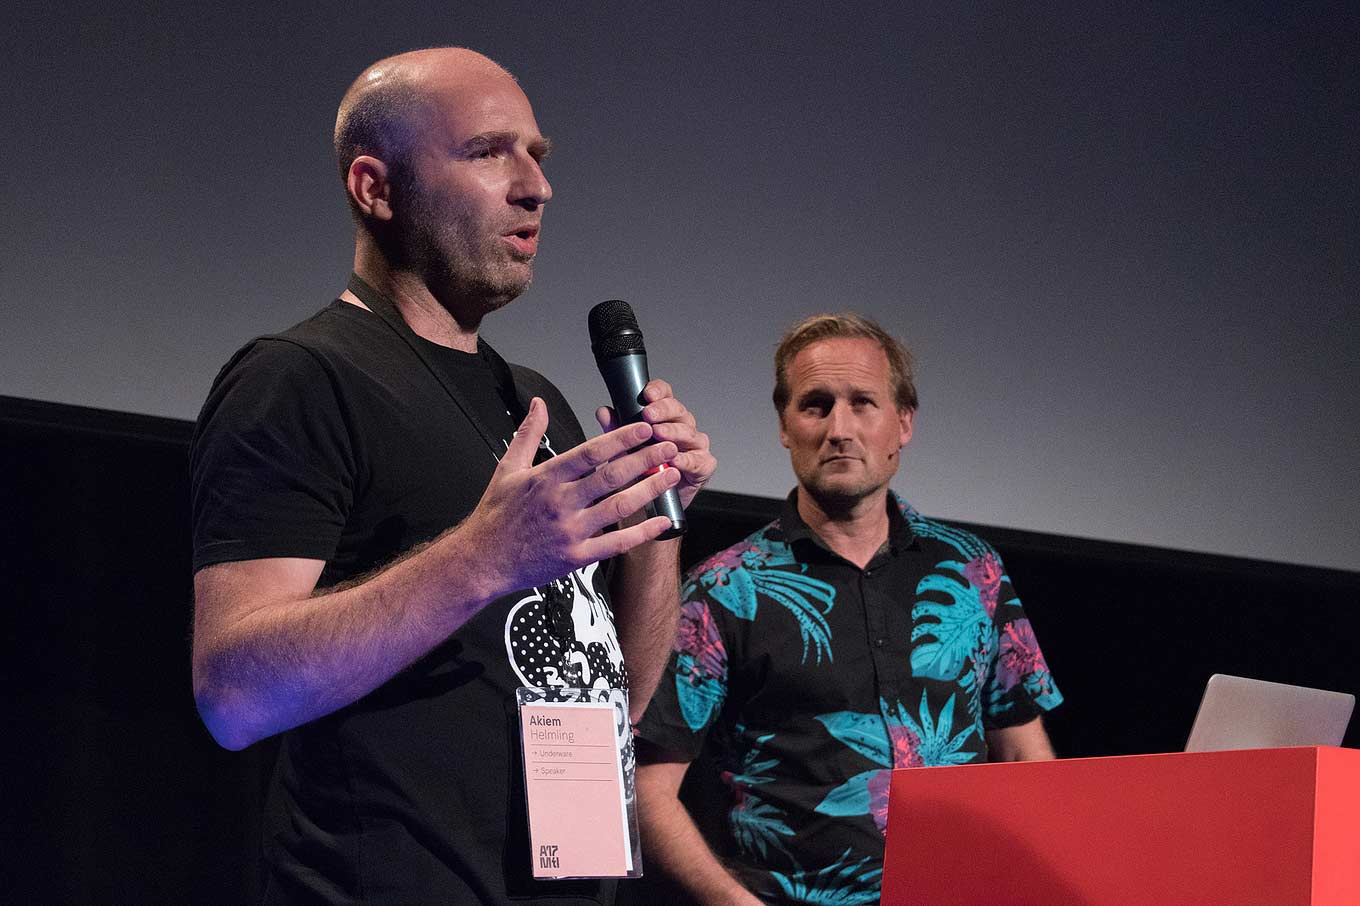 Bas Jacobs and Akiem Helmling presenting at ATypI 2017 Montreal.